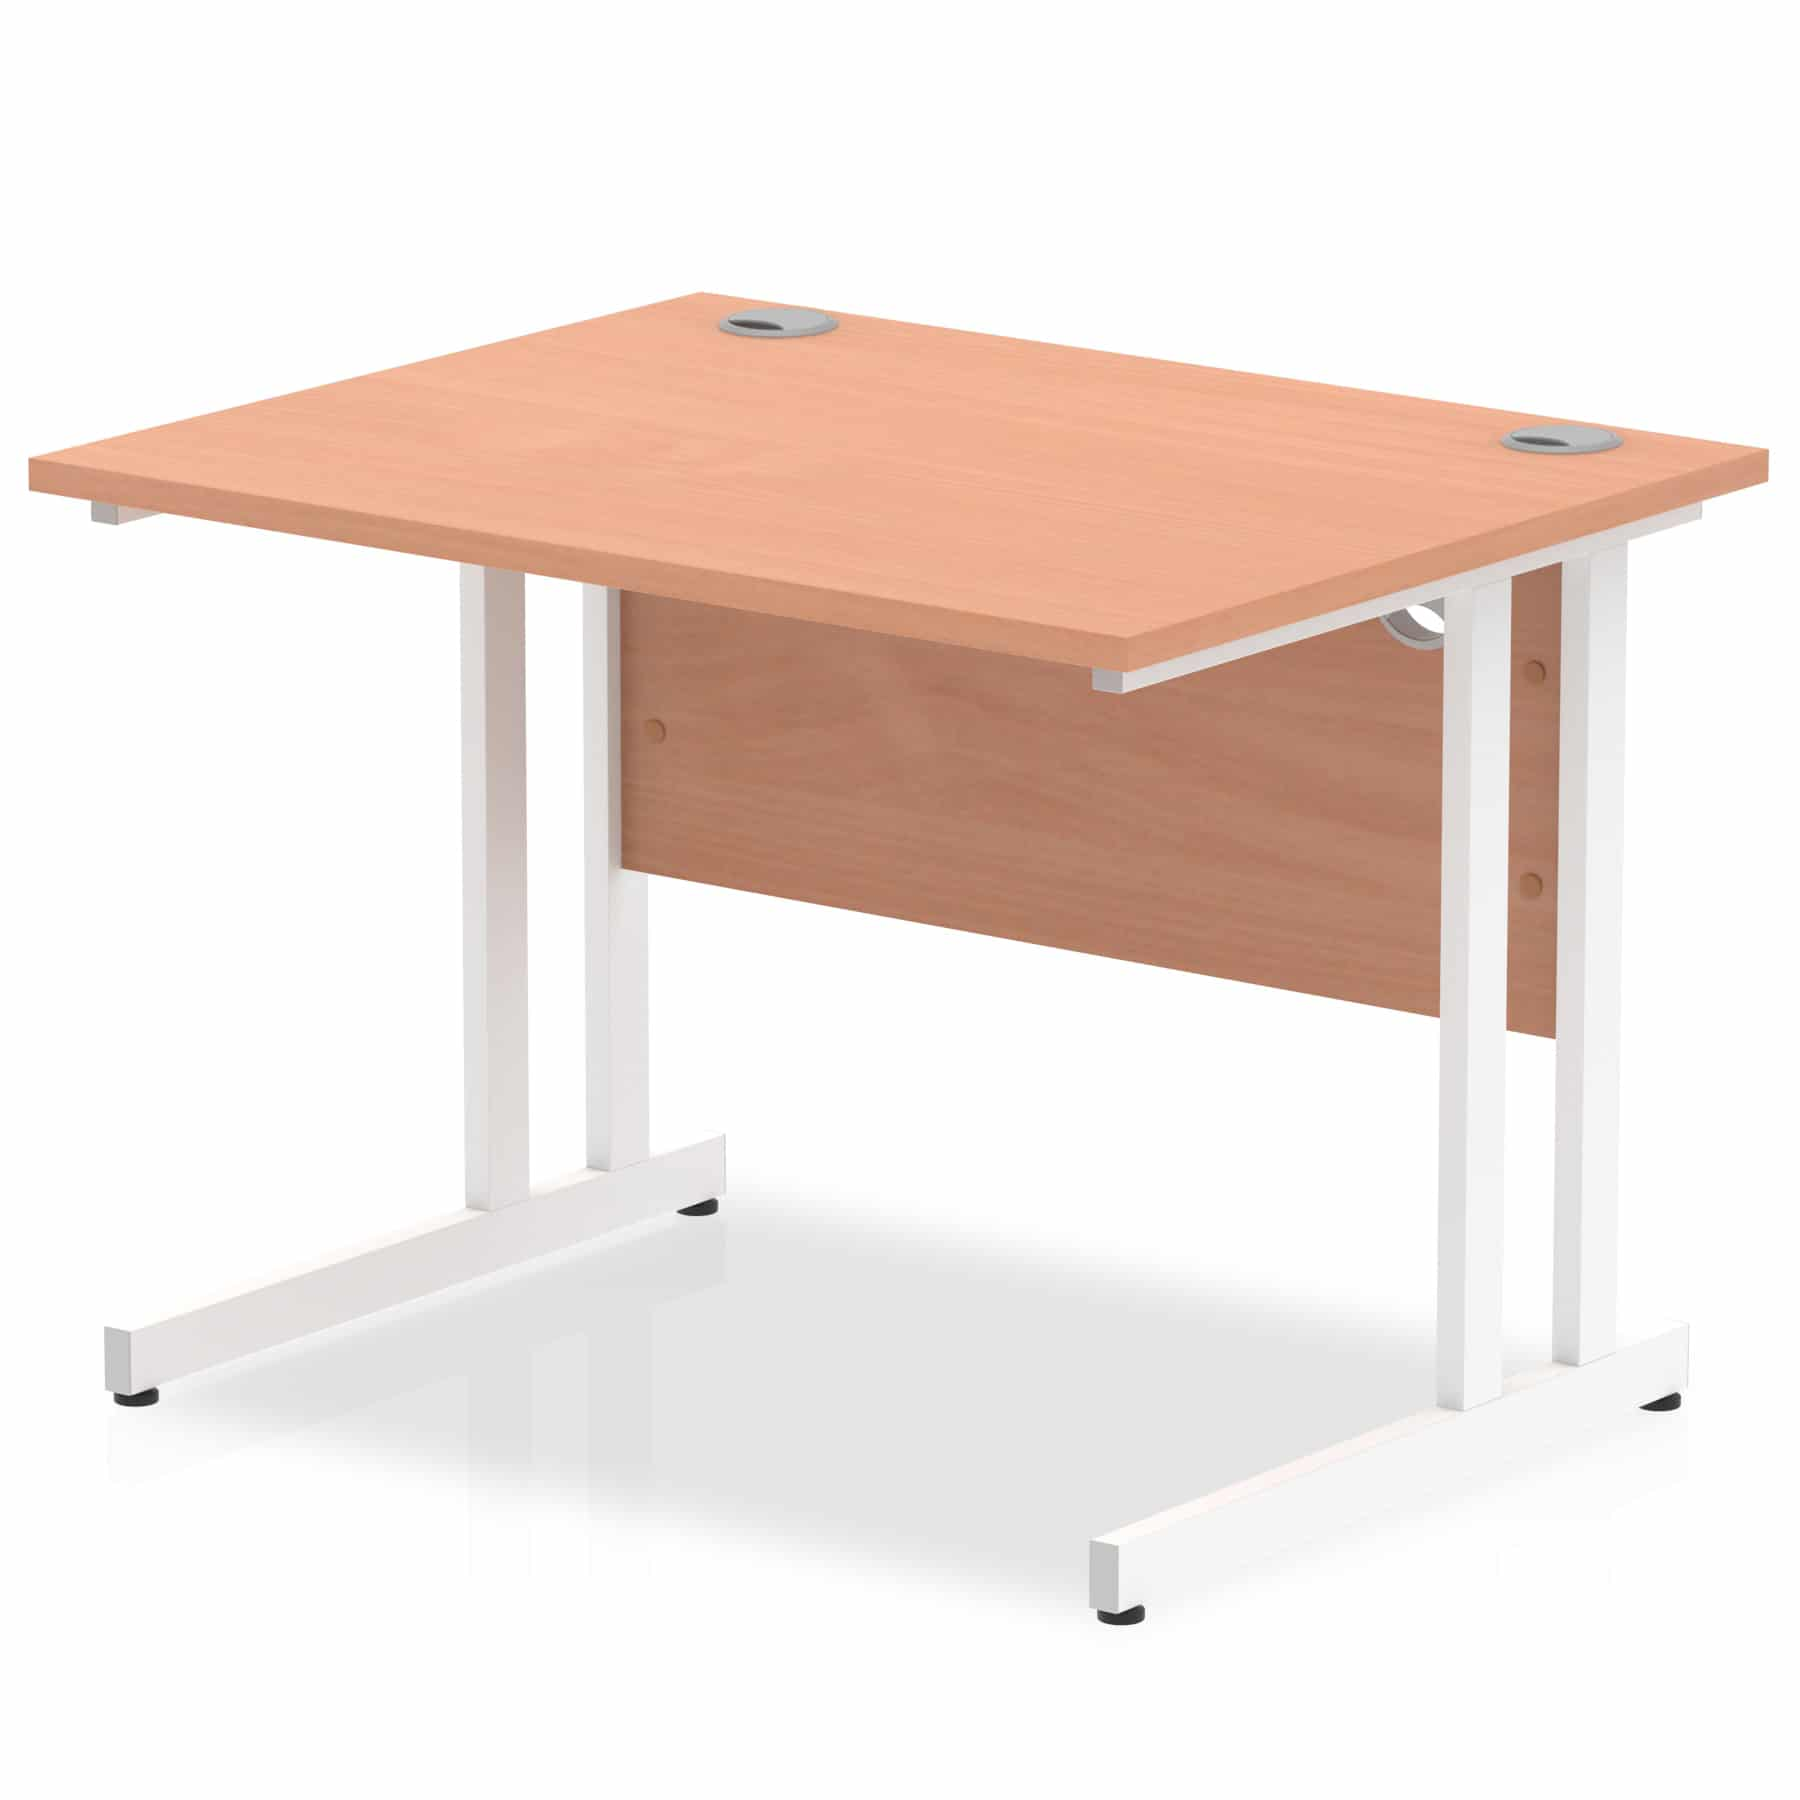 Slimline 1000mm x 600mm Rectangular Straight Desk in Beech